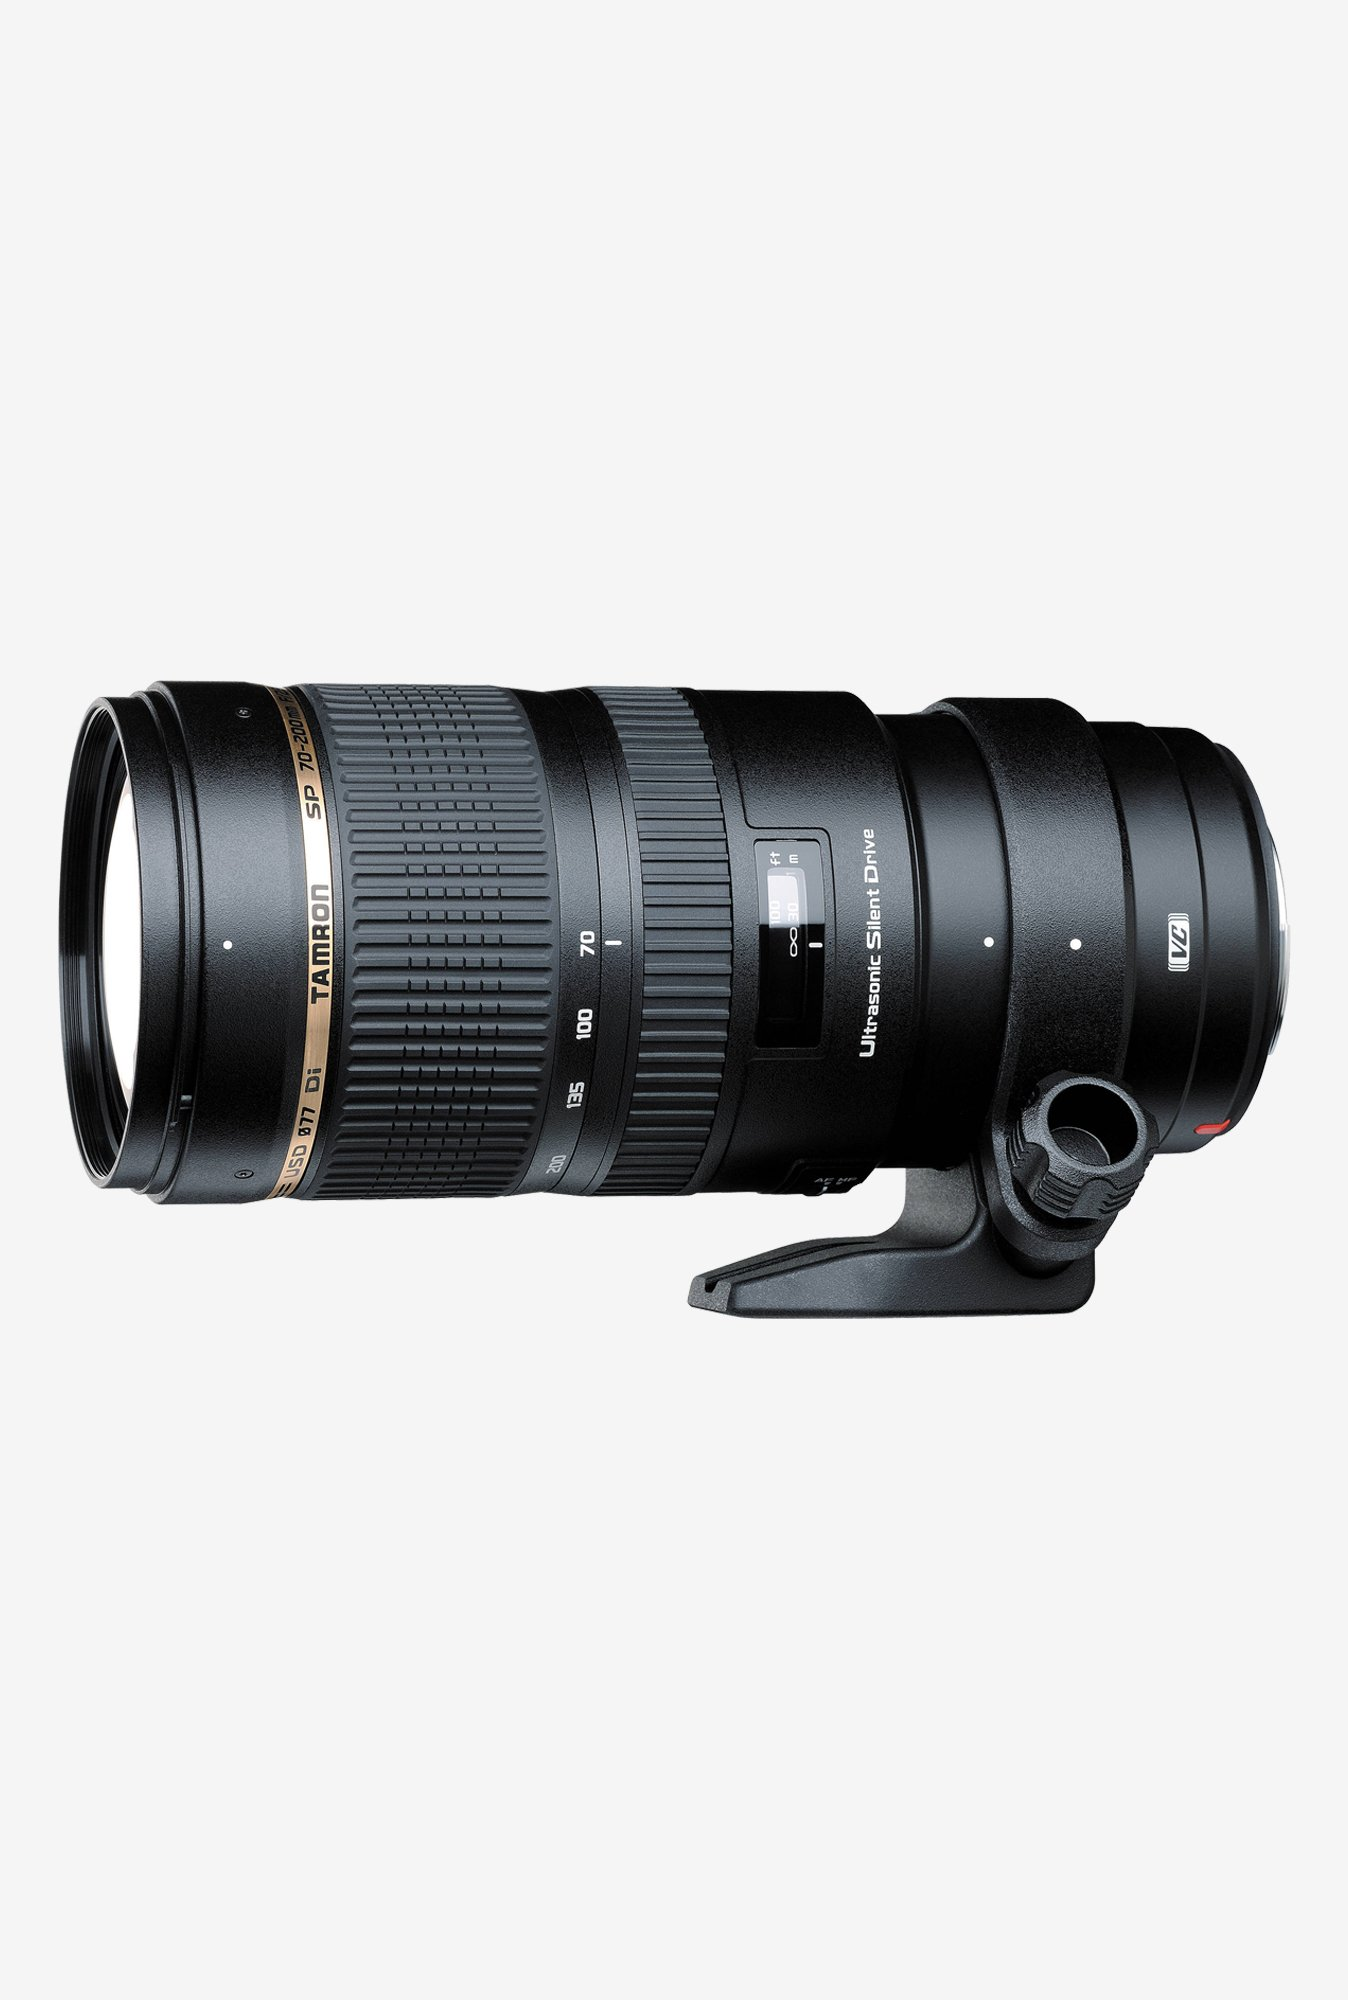 Tamron SP 70-200mm f/2.8 Di VC USD Lens for Sony DSLR